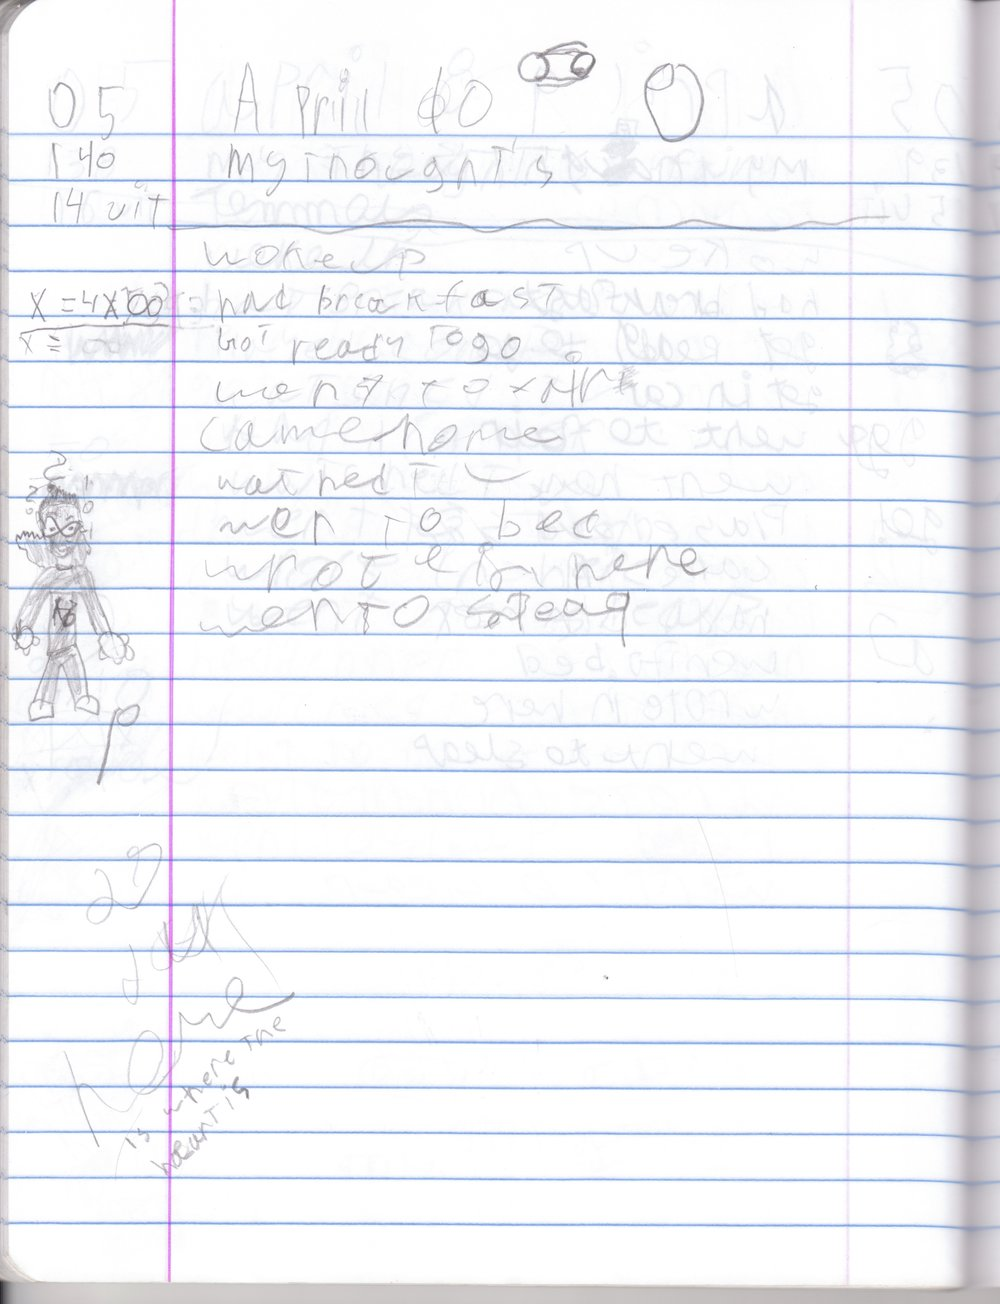 my first diary-log_Page_182.jpg